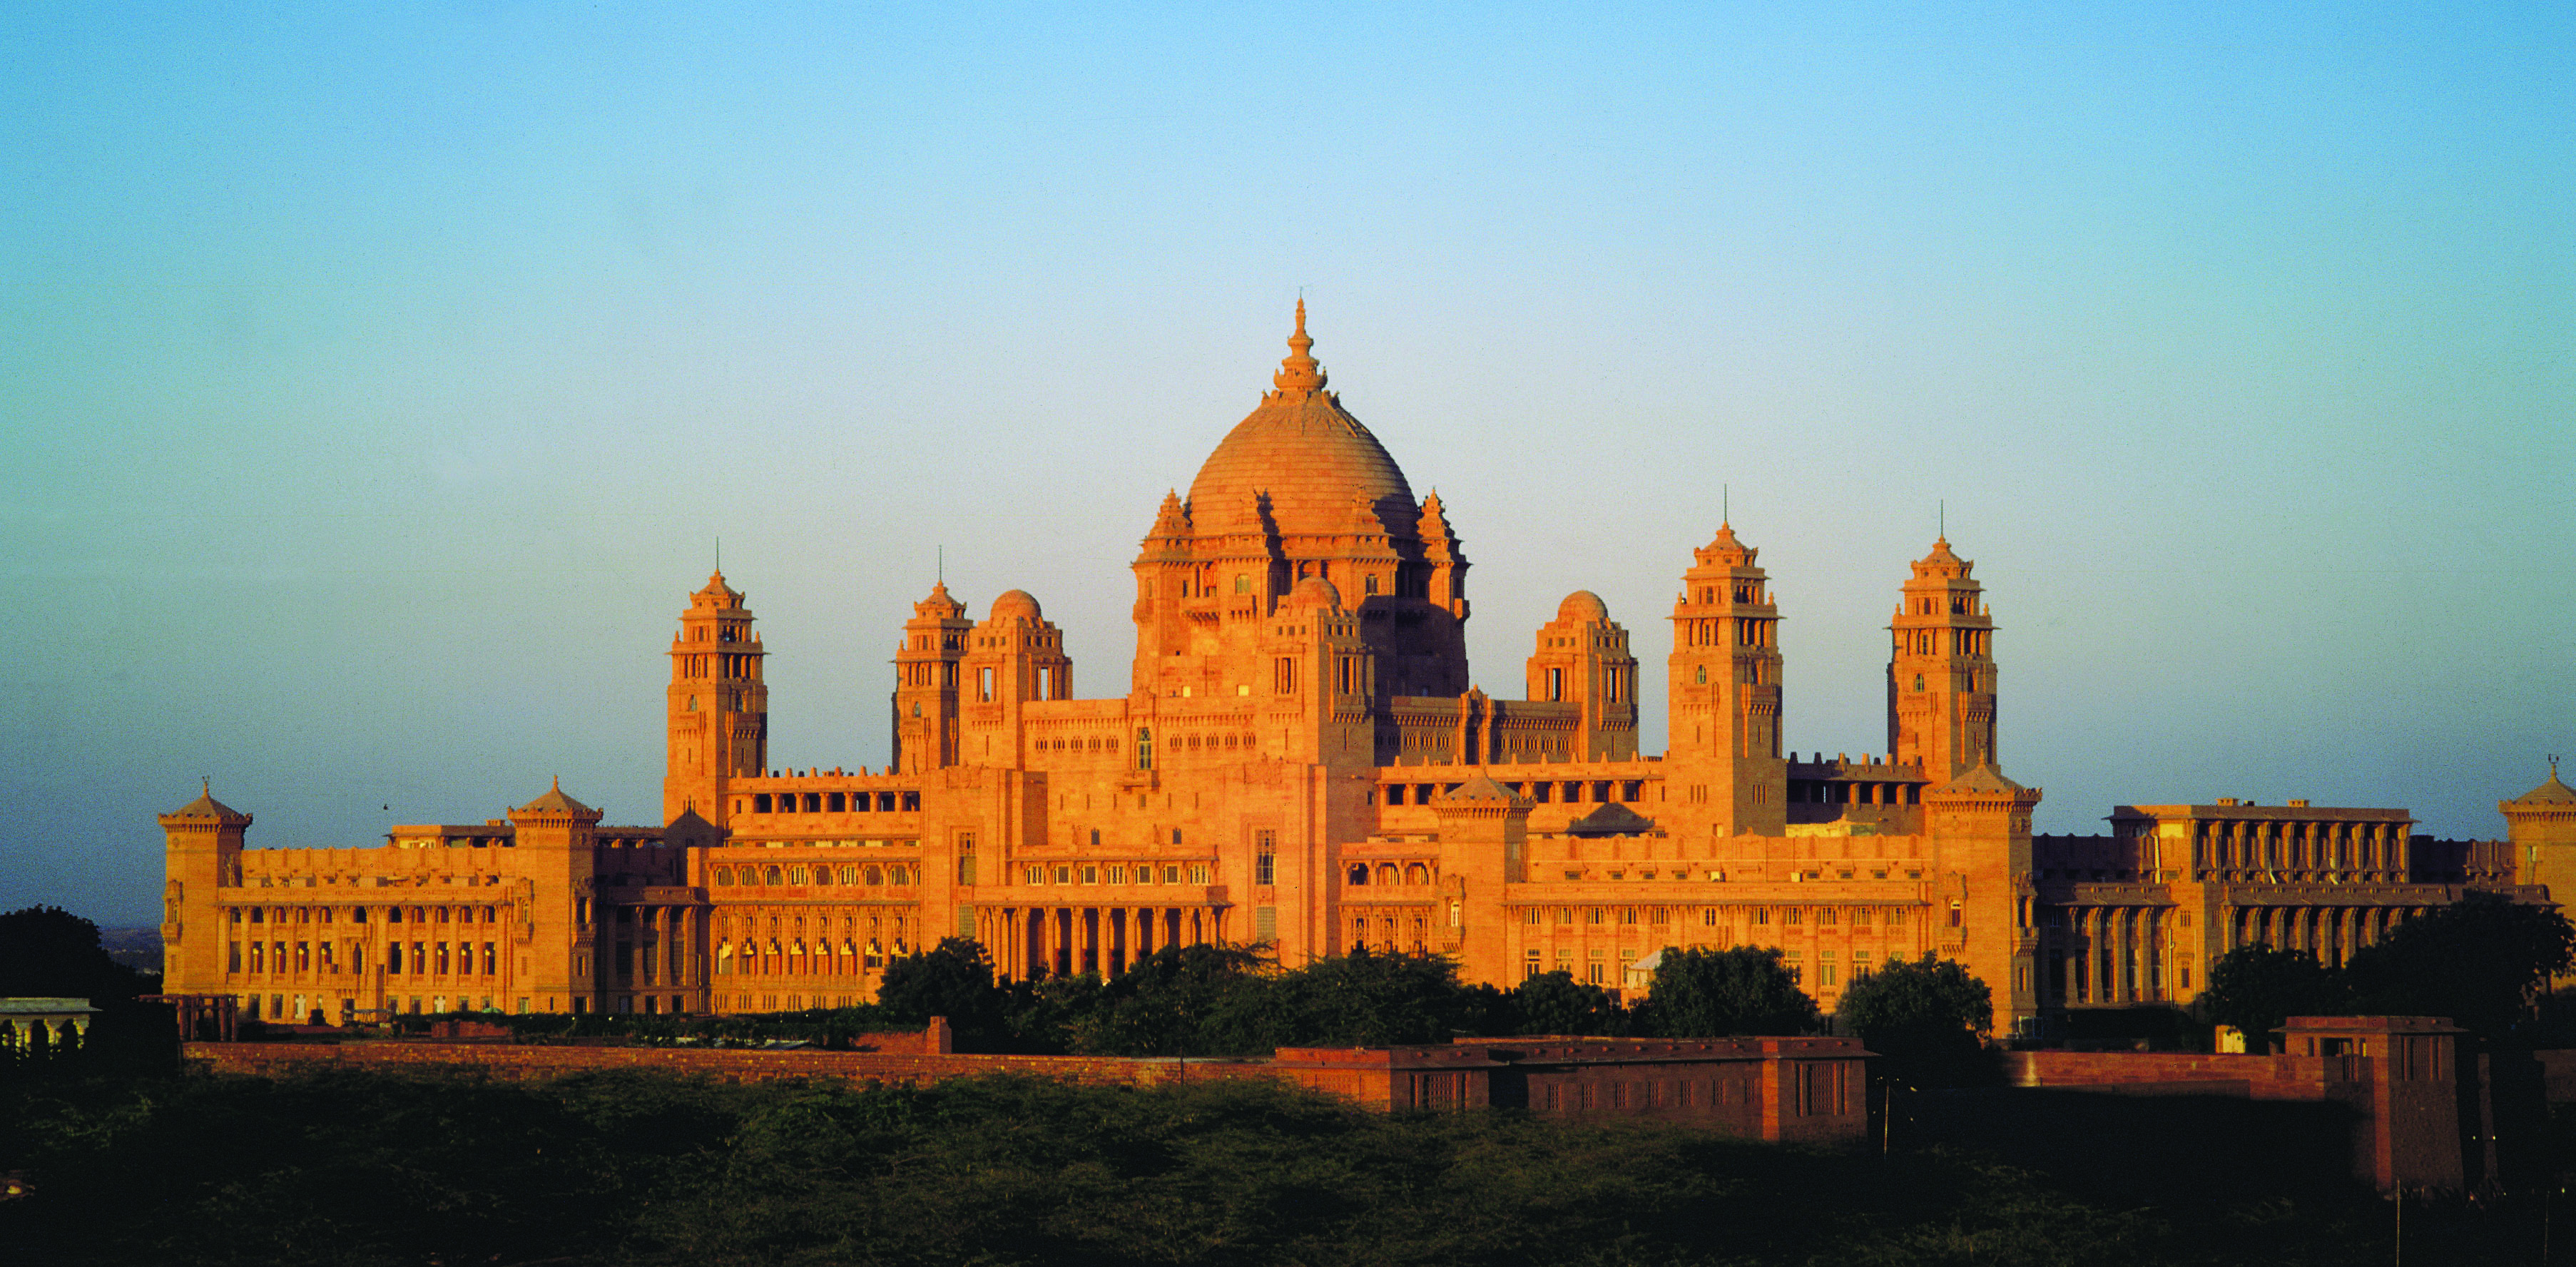 umaid bhawan palace jodhpur - desert cities in rajasthan